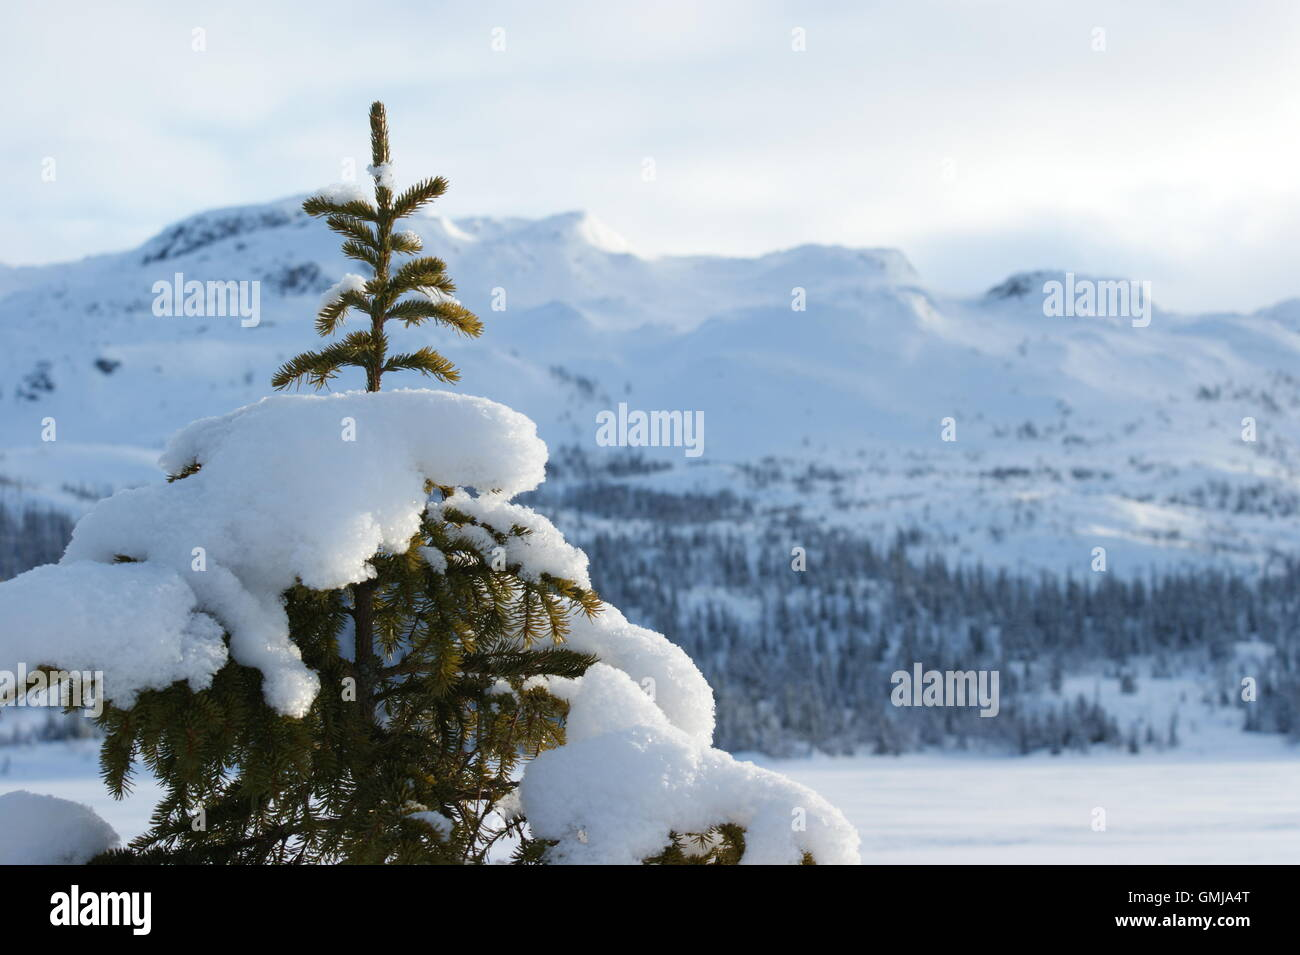 Snow-covered spruce in Norwegian landscape - Stock Image